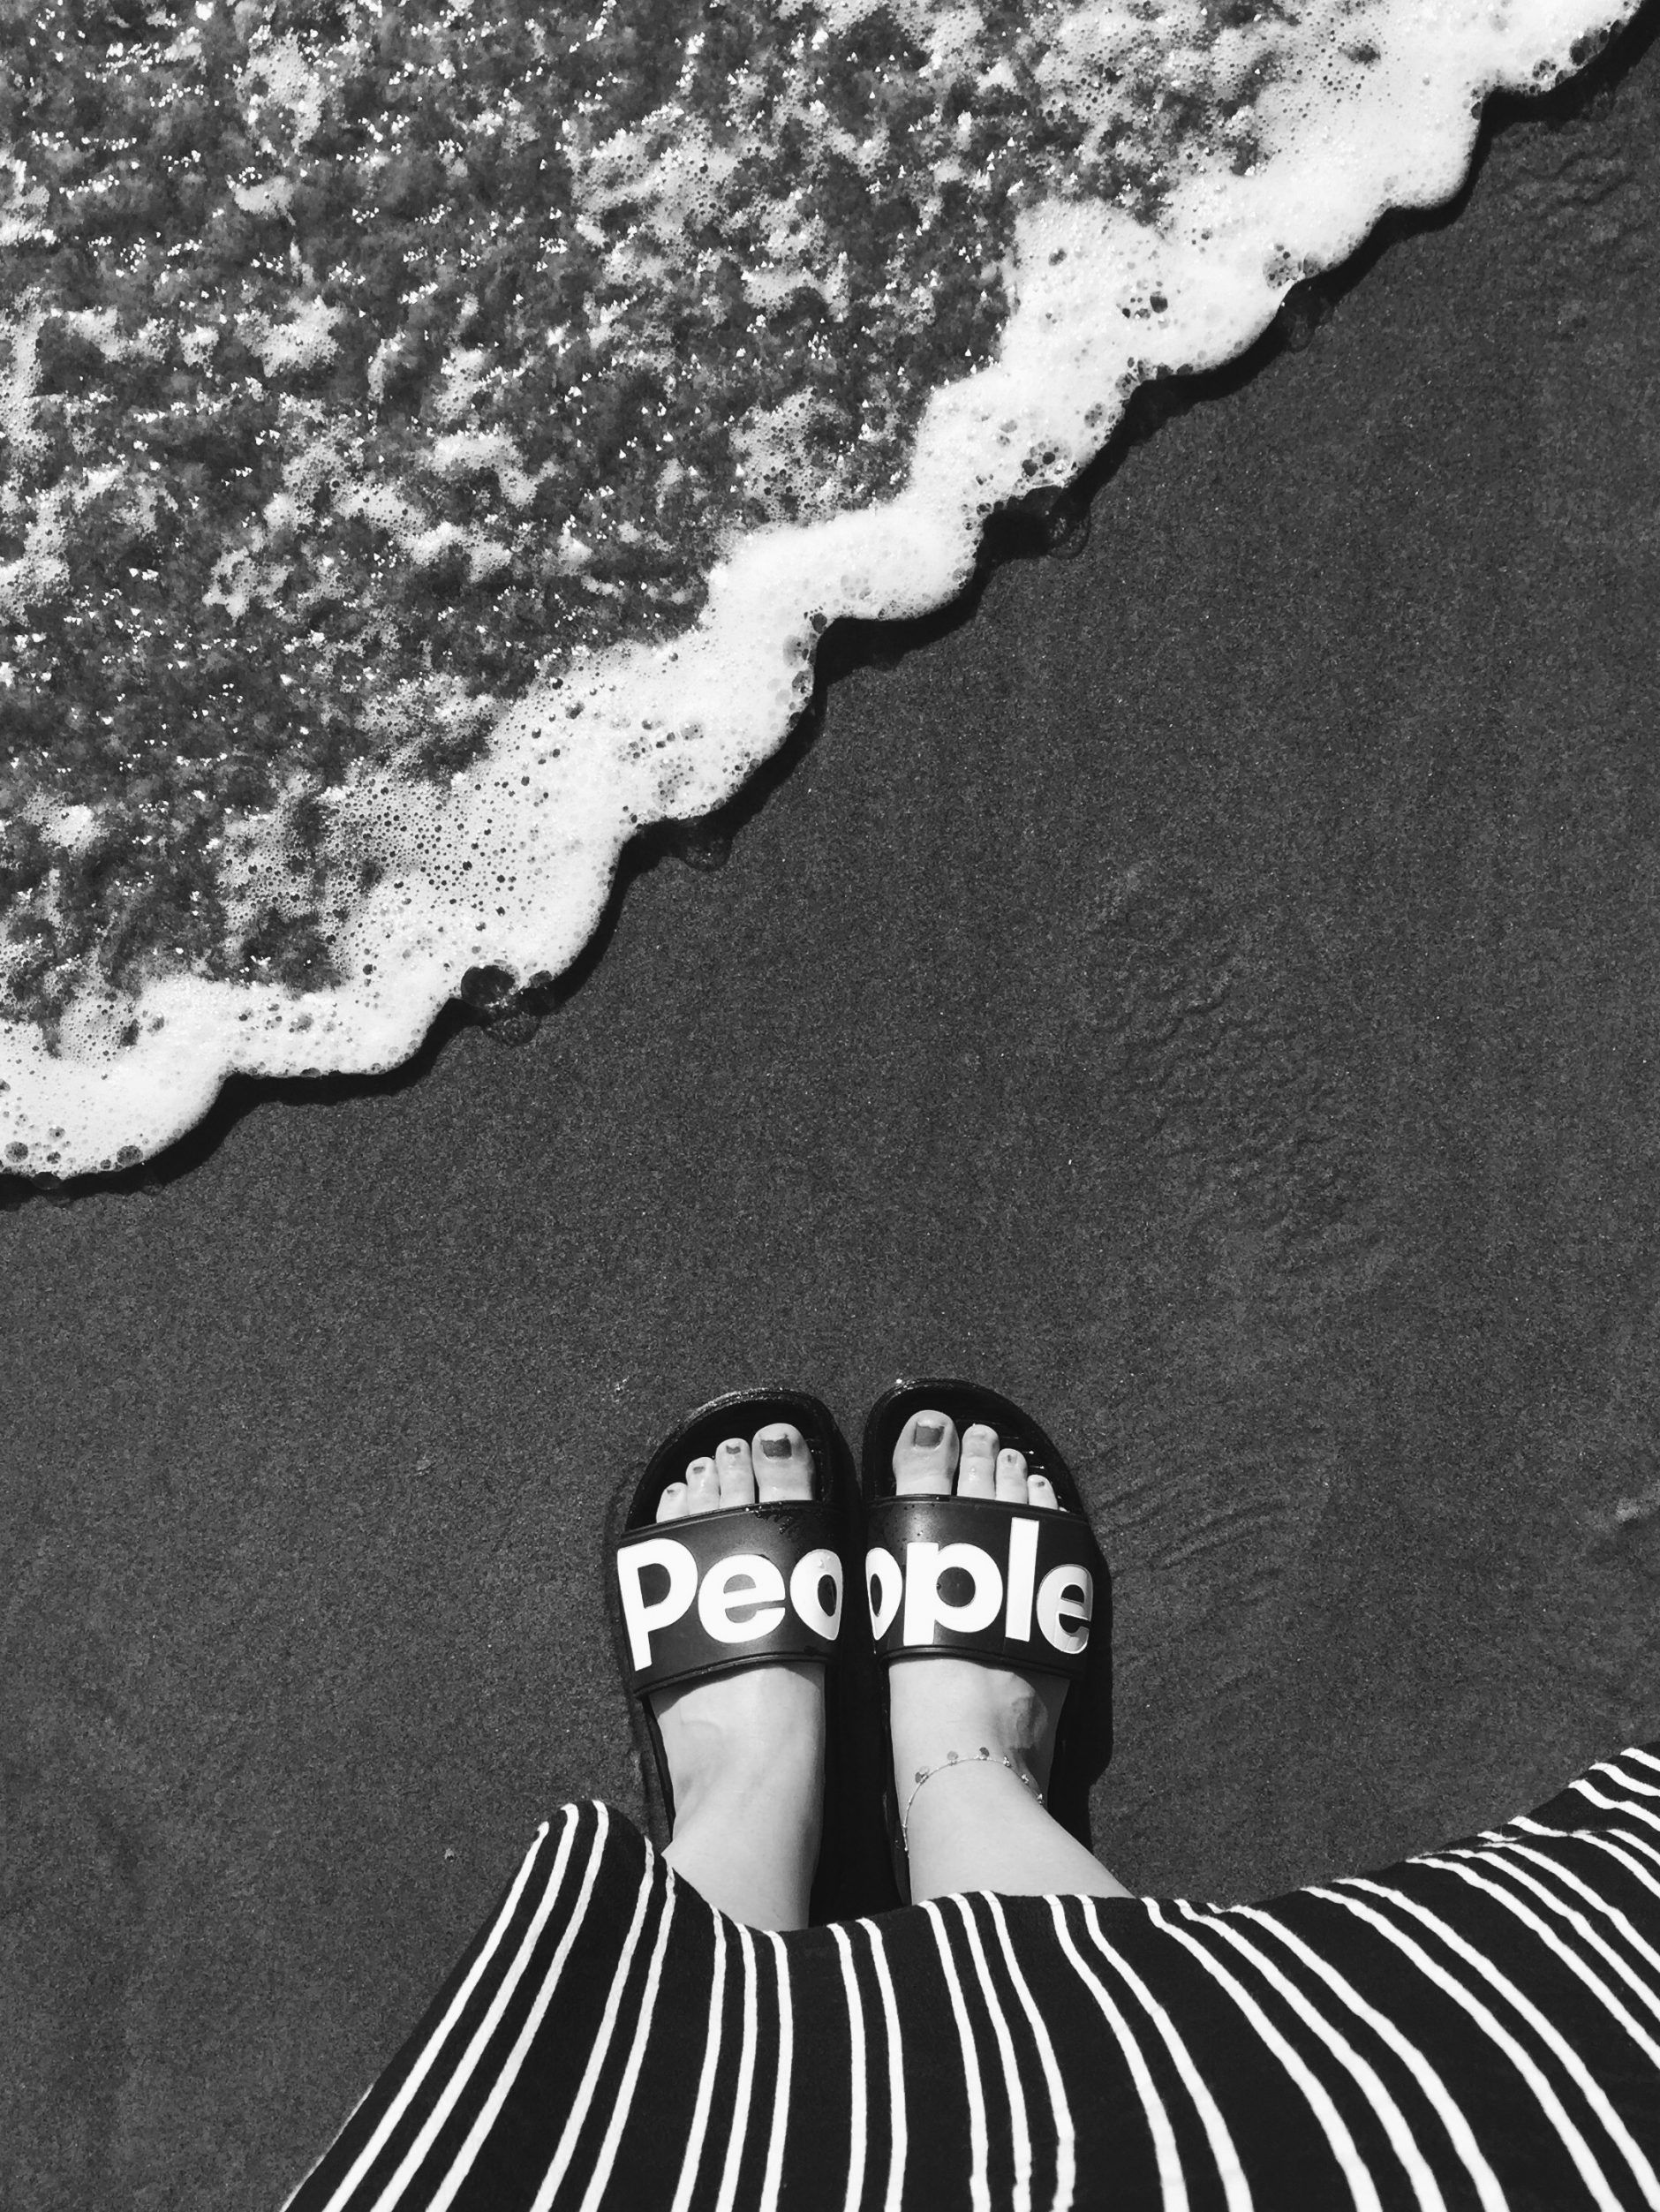 People Footwear — Solo Day At The Beach #TheLennonSlide – Photographer: Laurel Dailey